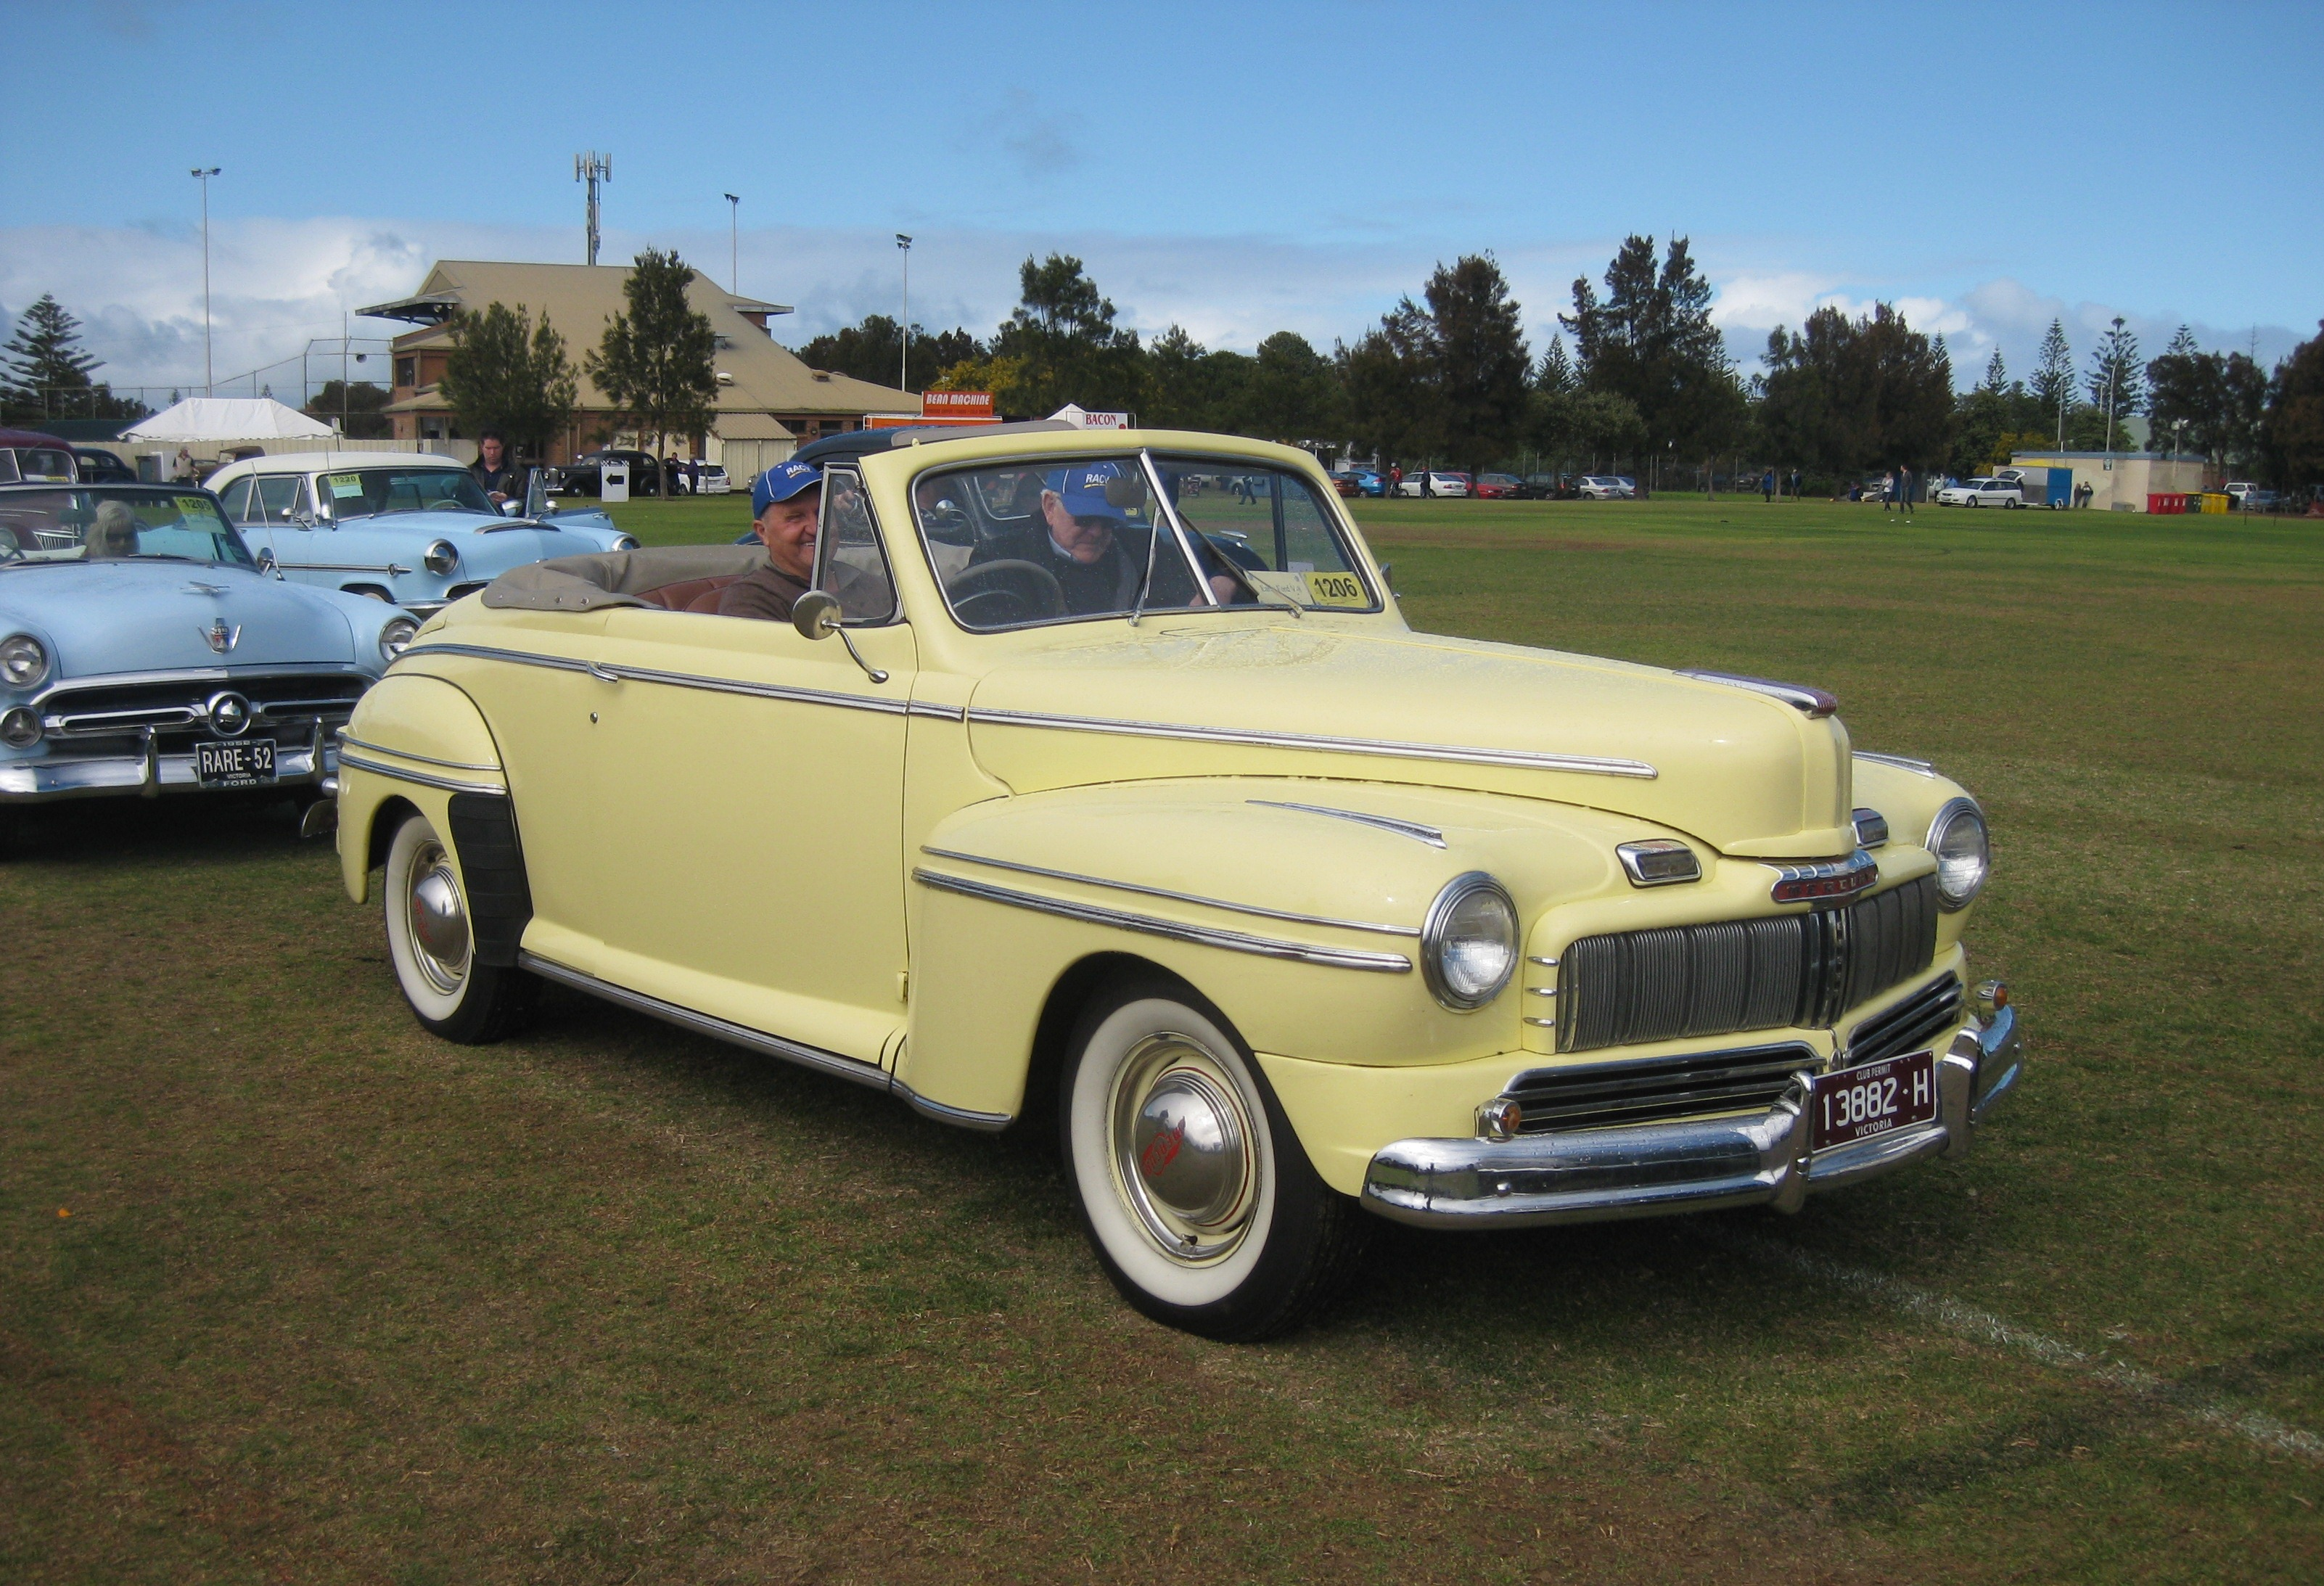 Build Your Own Ford >> File:1946 Mercury Club Convertible.JPG - Wikimedia Commons